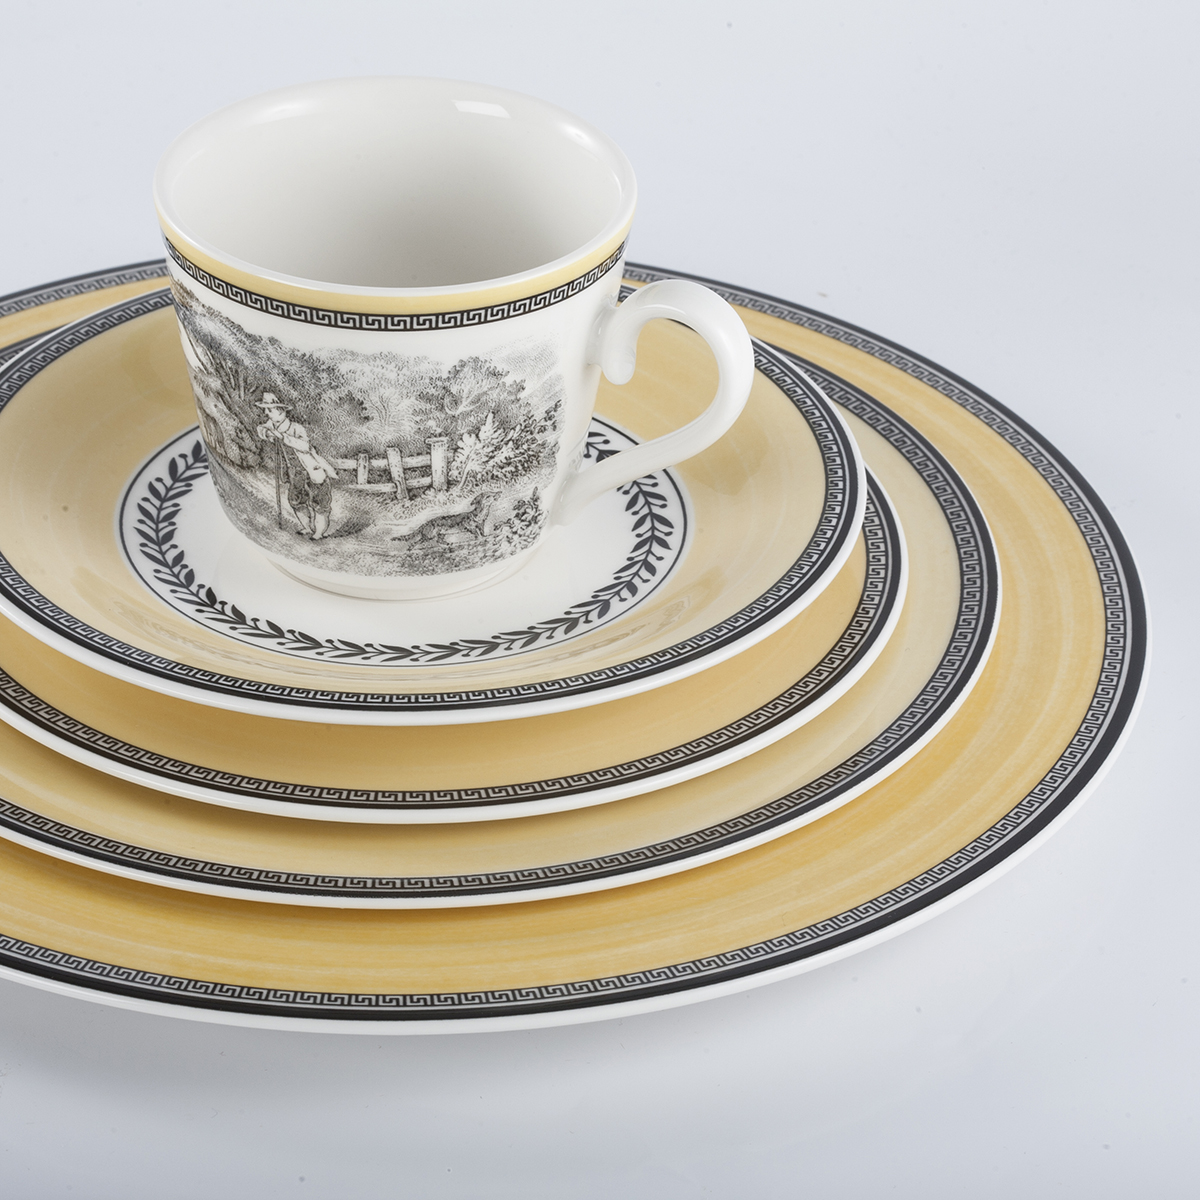 4 Piece Place Setting - Chasse